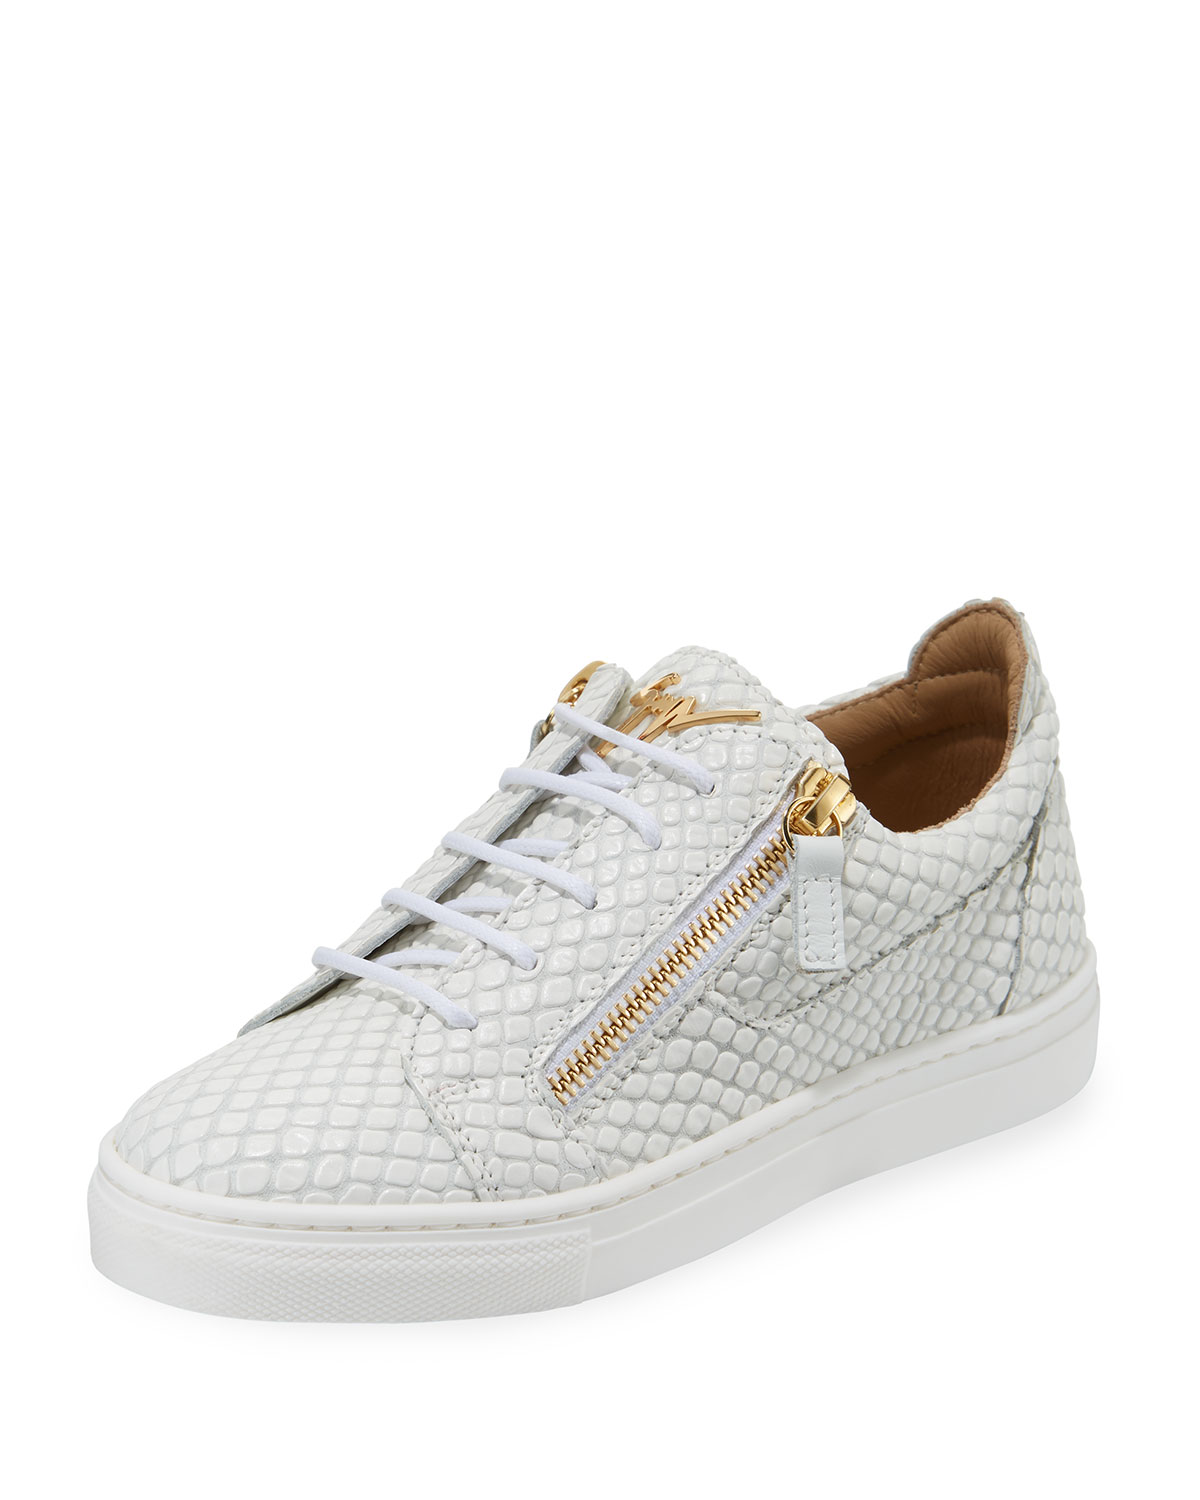 a50d90c8369 Snake-Embossed Leather Low-Top Sneakers, Toddler/Kids